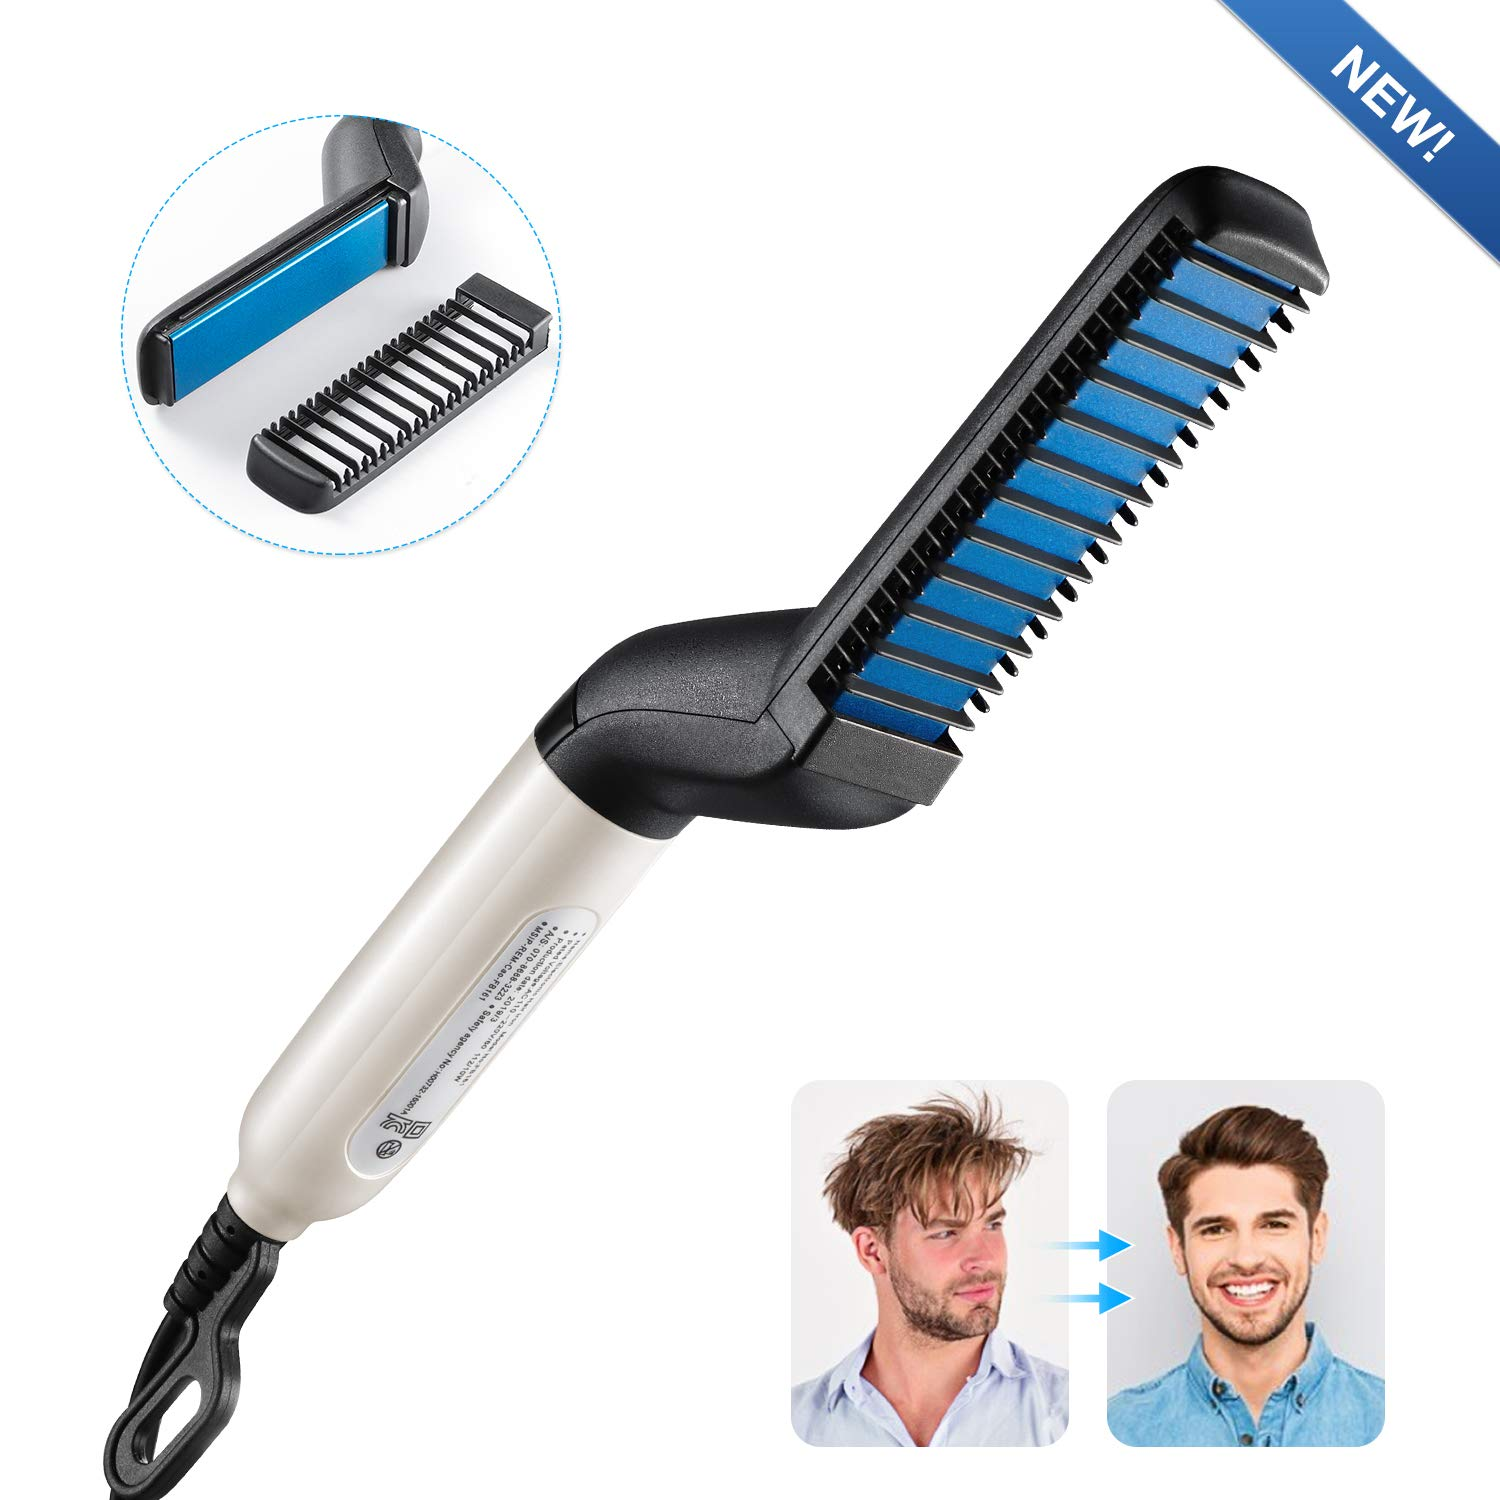 Electric Hair Comb, RIOFLY Quick Beard Hair Styler Comb, Electric Beard Straightener for Men, Multifunctional Hair Comb Curling Iron, Men's Professional Quick Hair Styler by RIOFLY